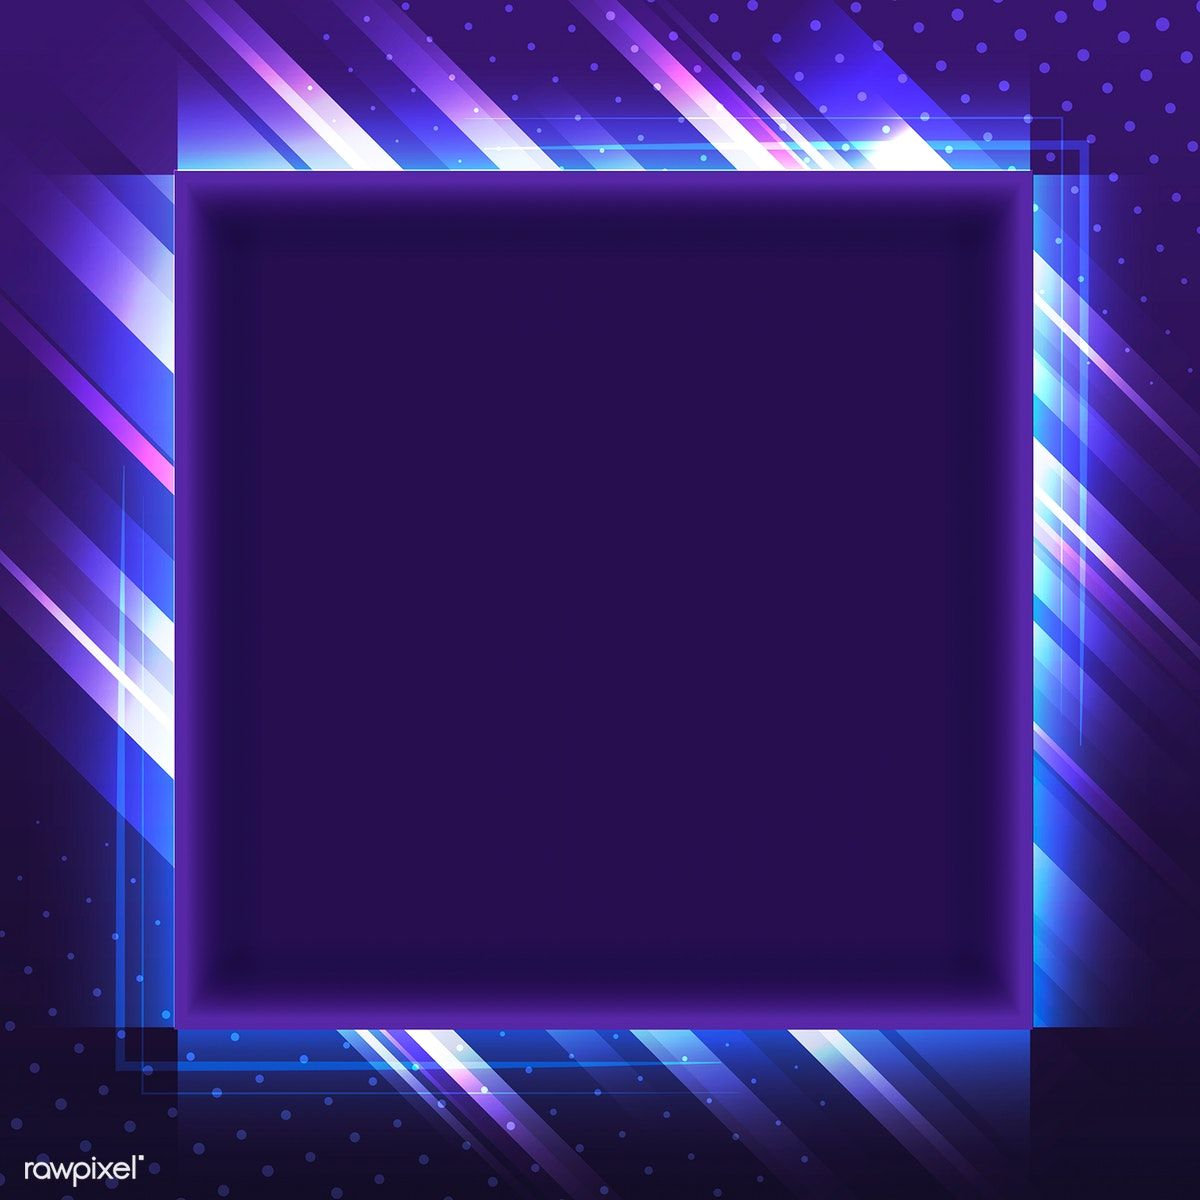 Blank Violet Square Neon Signboard Vector Free Image By